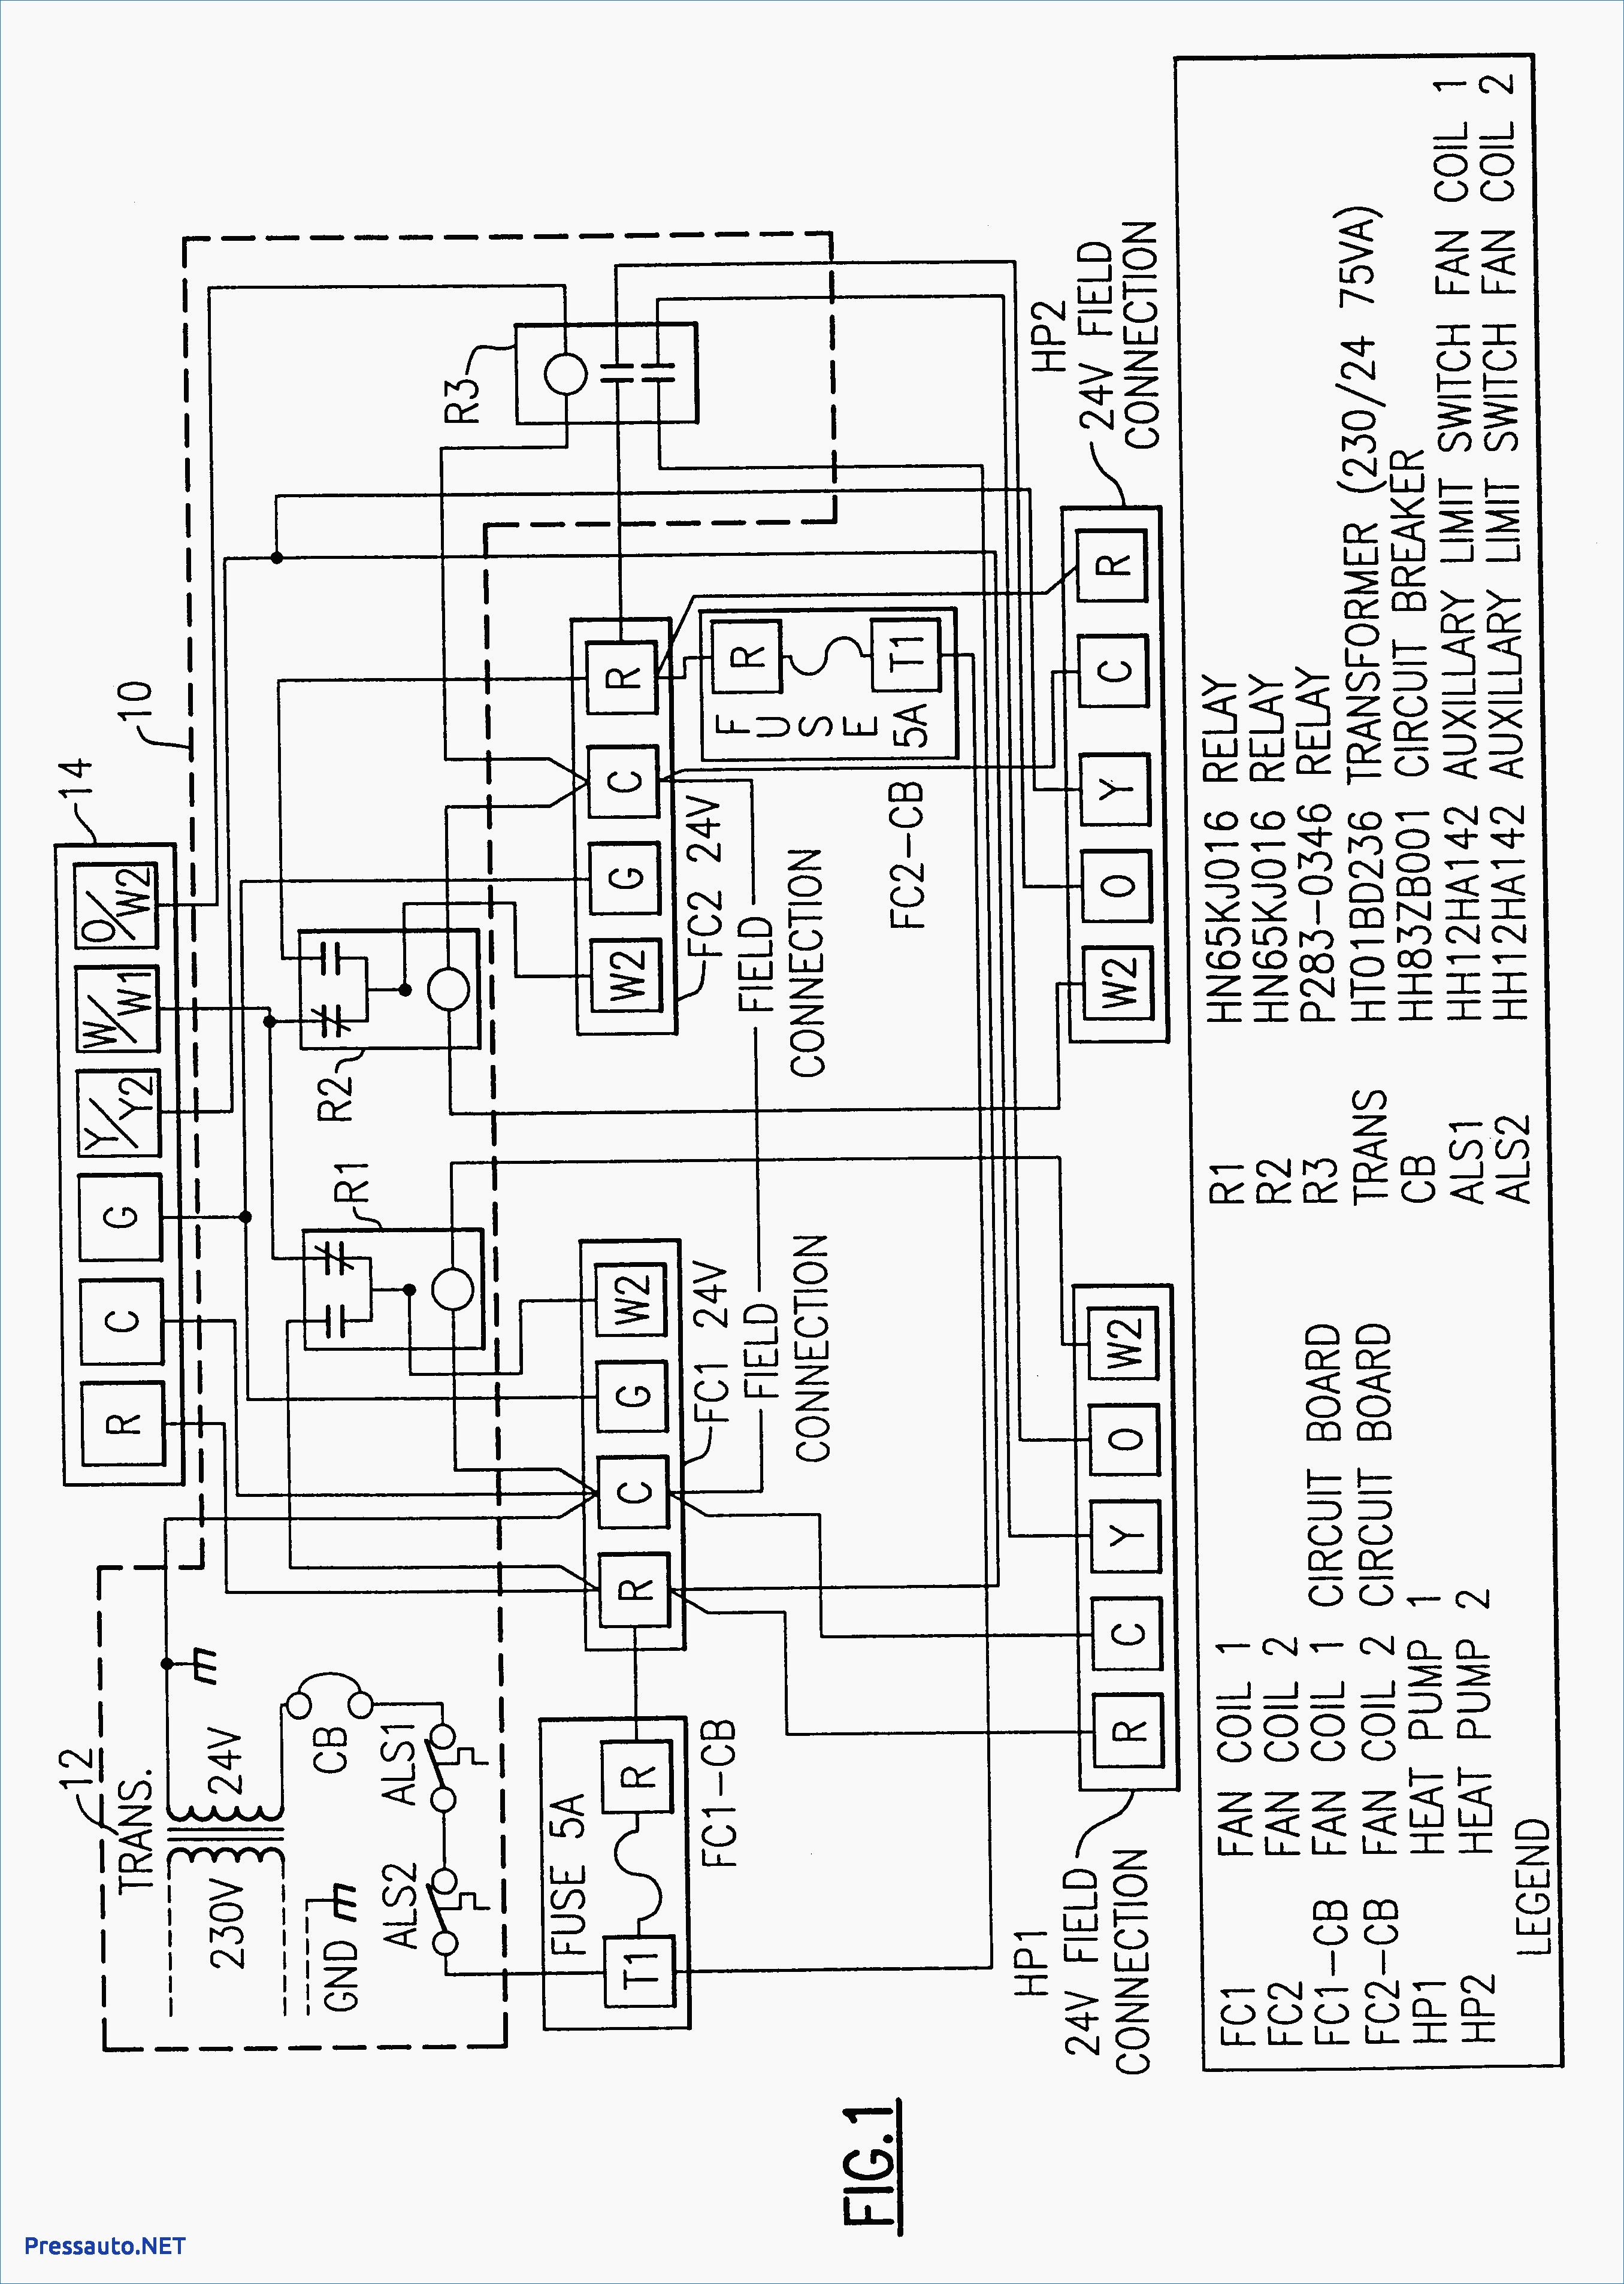 Honeywell S8610u Wiring Diagram #3 | Honeywell, Diagram, Thermostat wiringPinterest